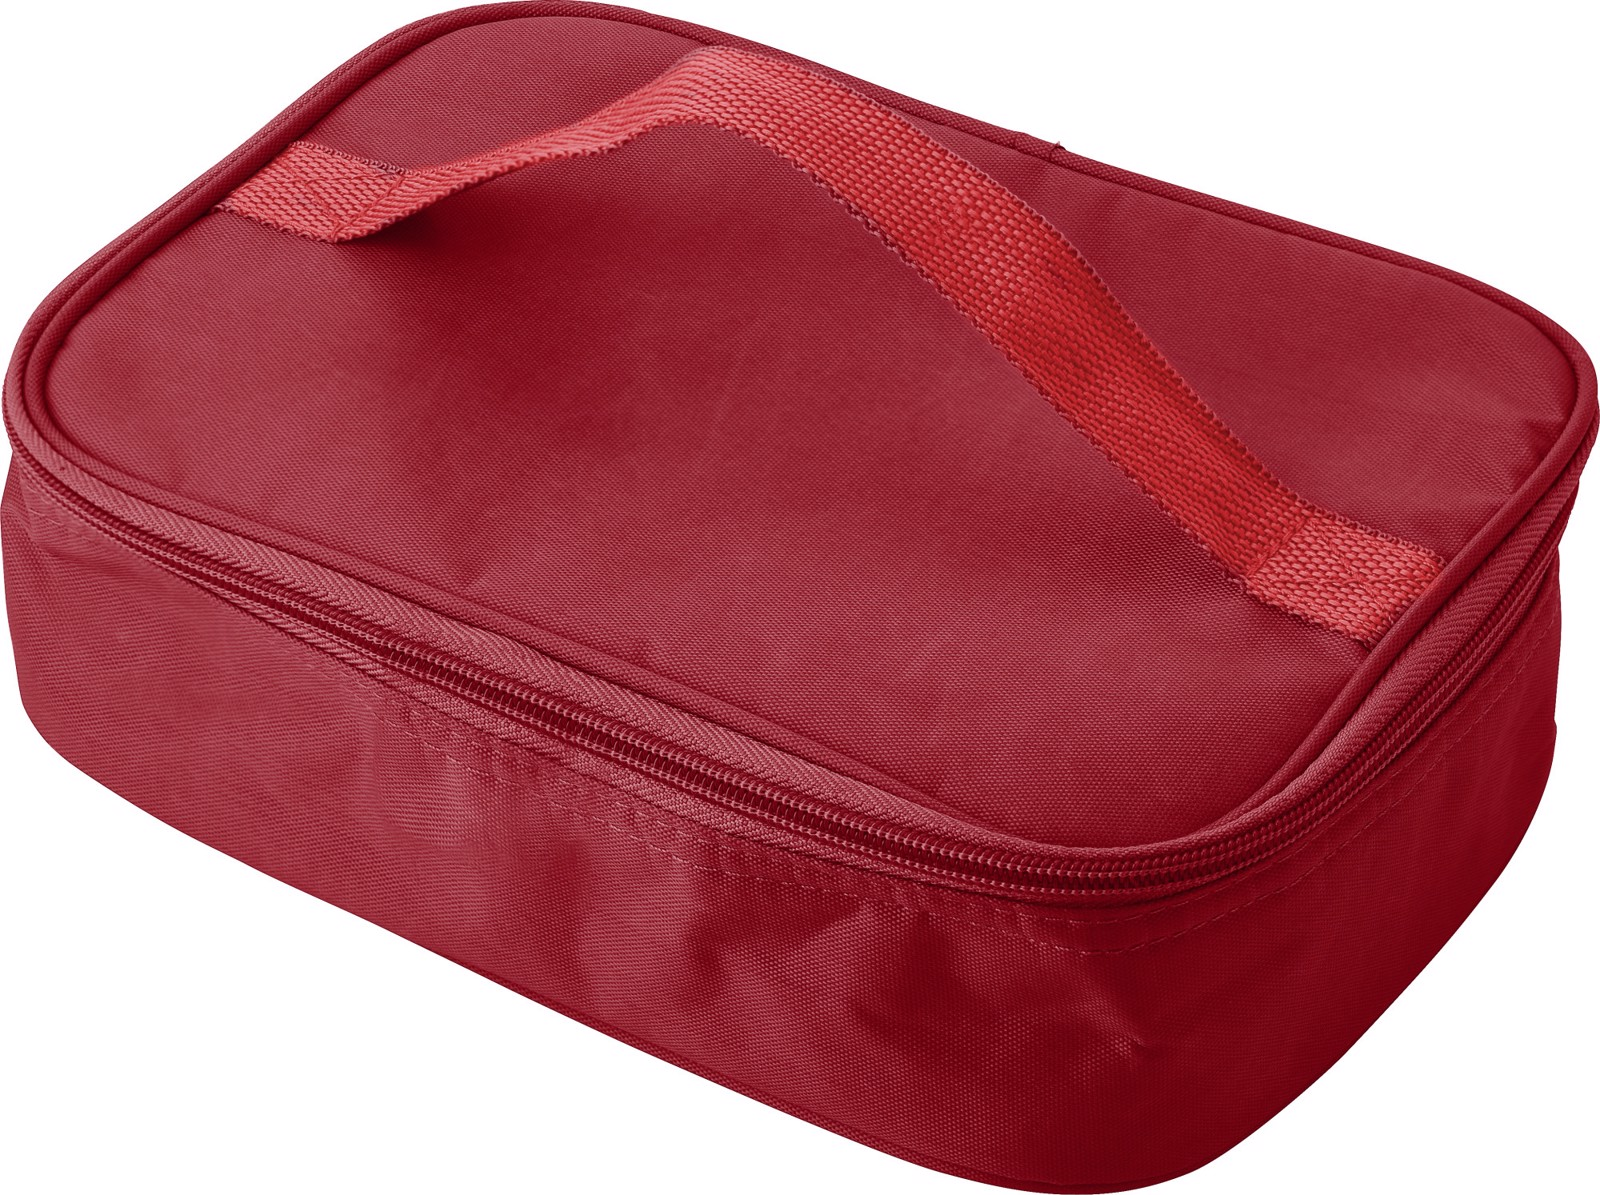 Plastic lunchbox in cooler bag - Red